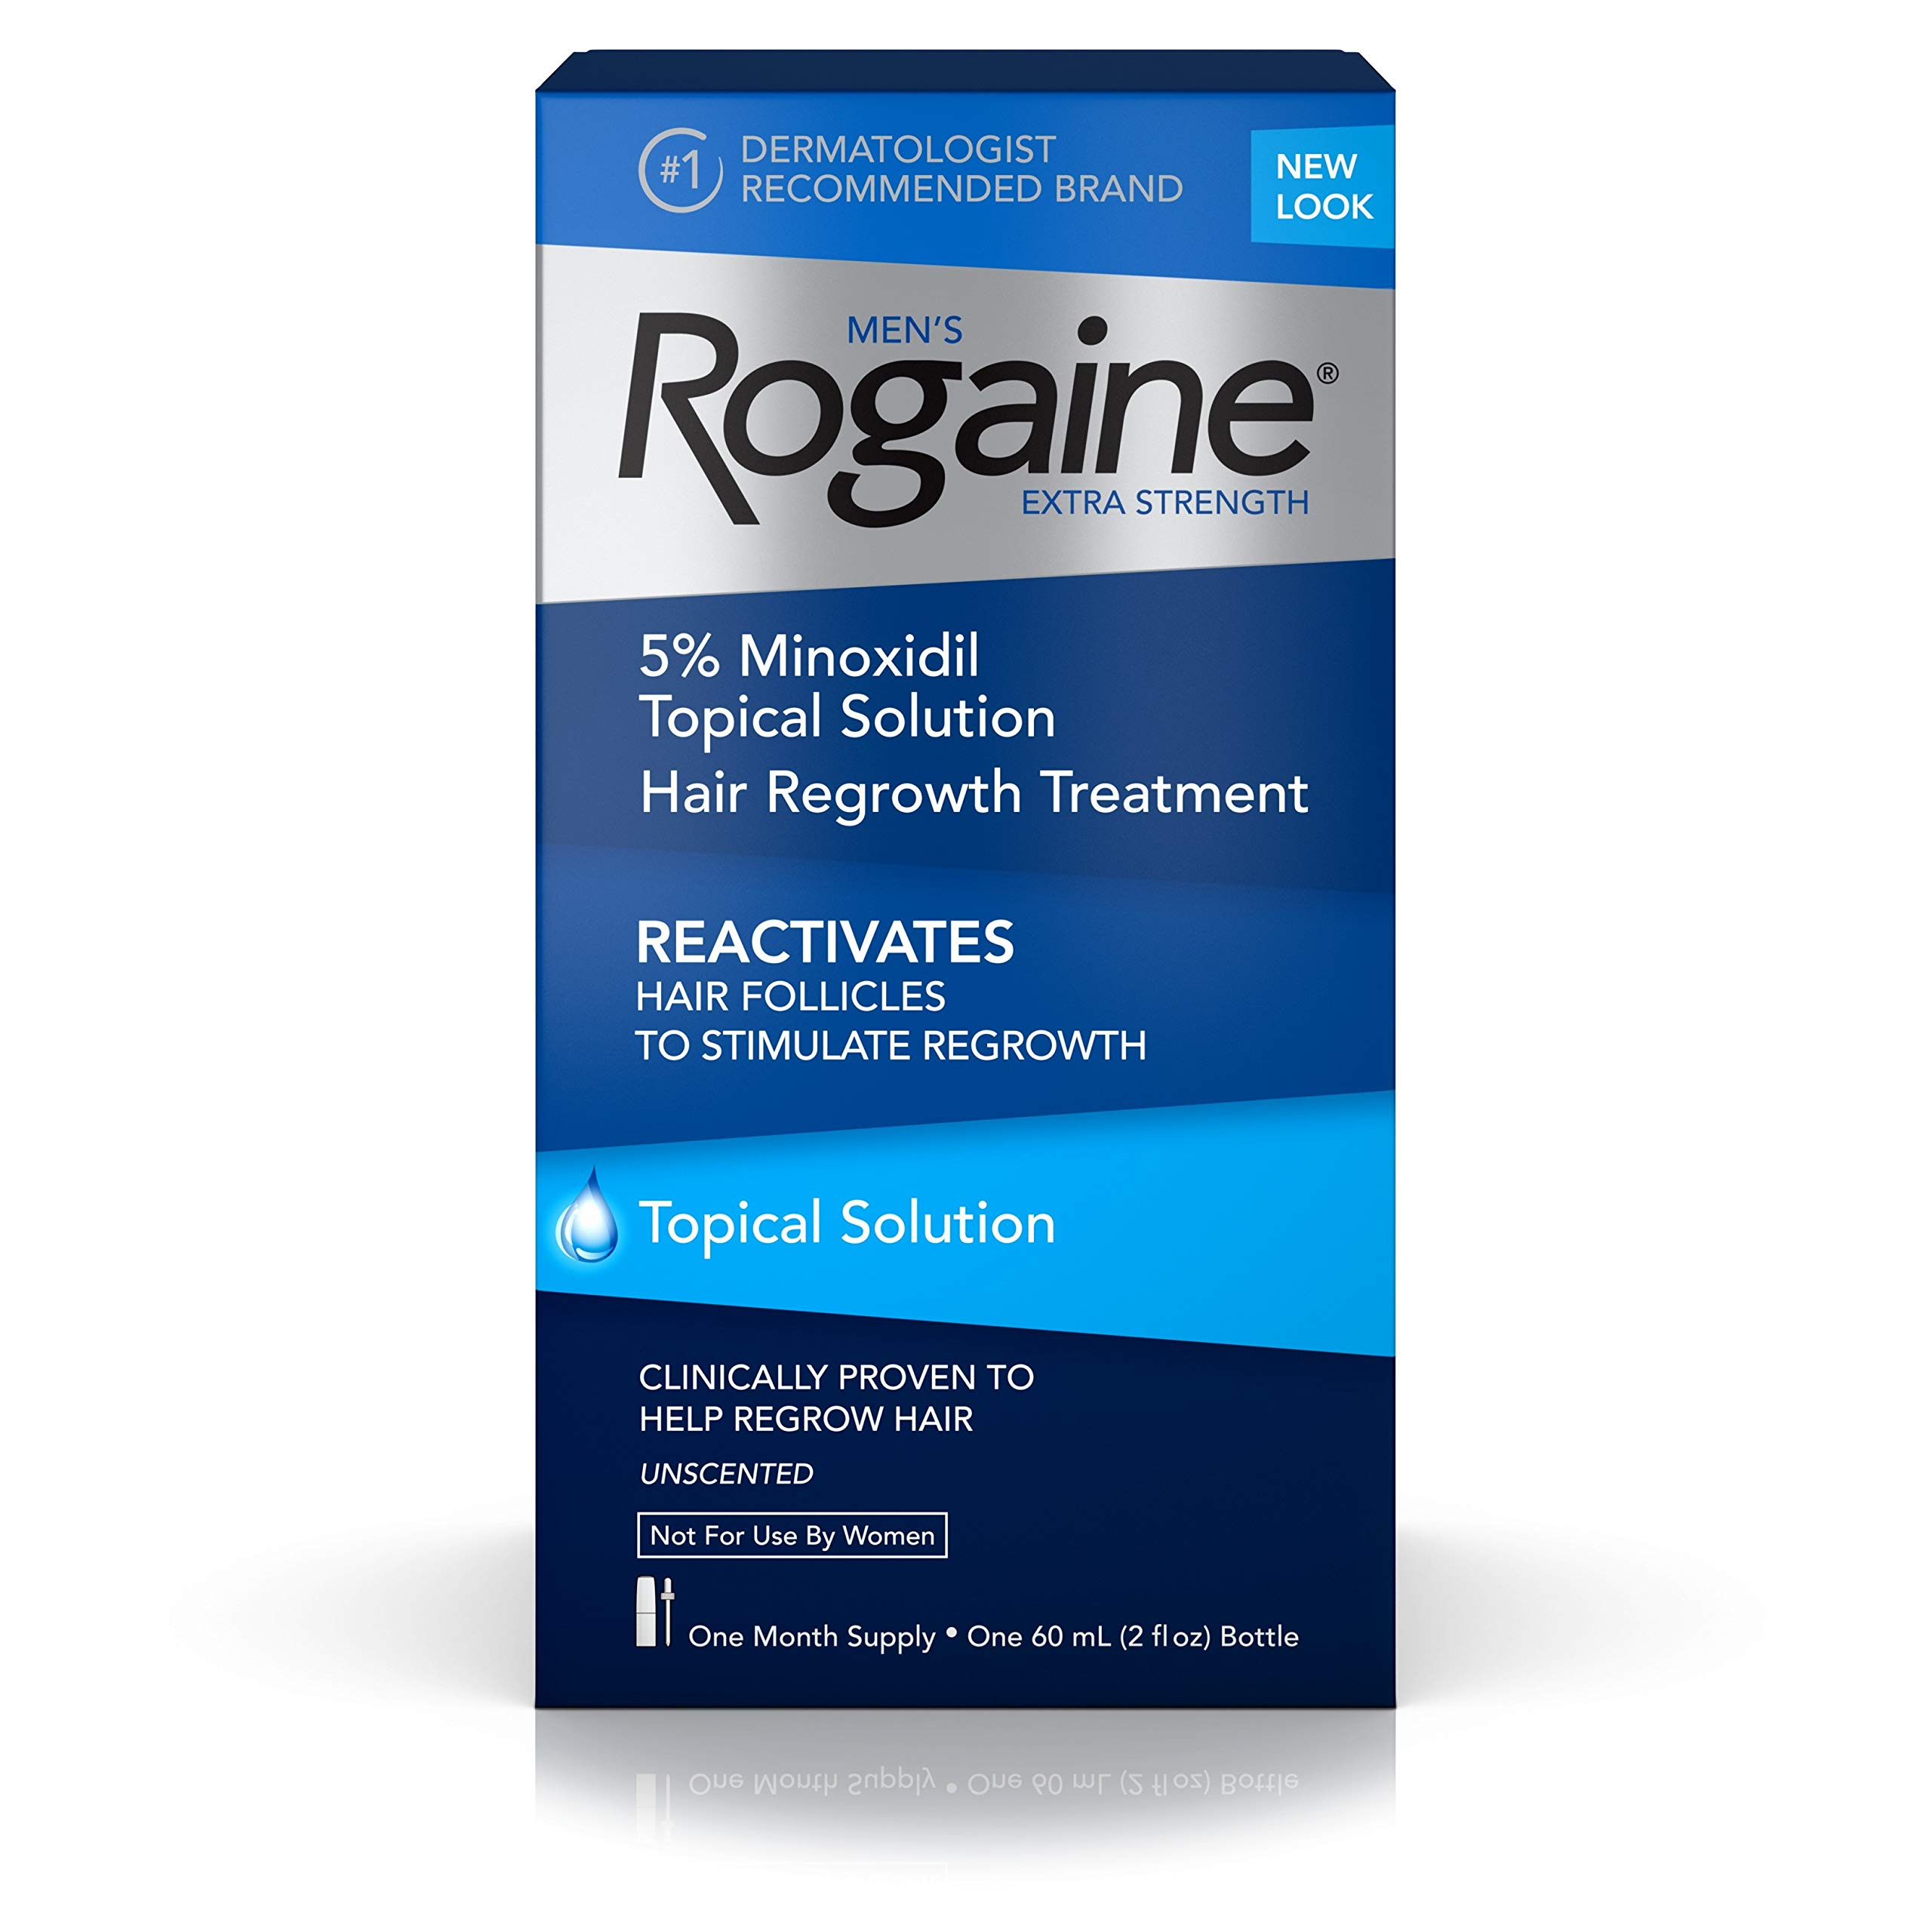 Men's Rogaine Extra Strength 5% Minoxidil Topical Solution for Hair Loss and Hair Regrowth, Topical Treatment for Thinning Hair, 1-Month Supply by Rogaine